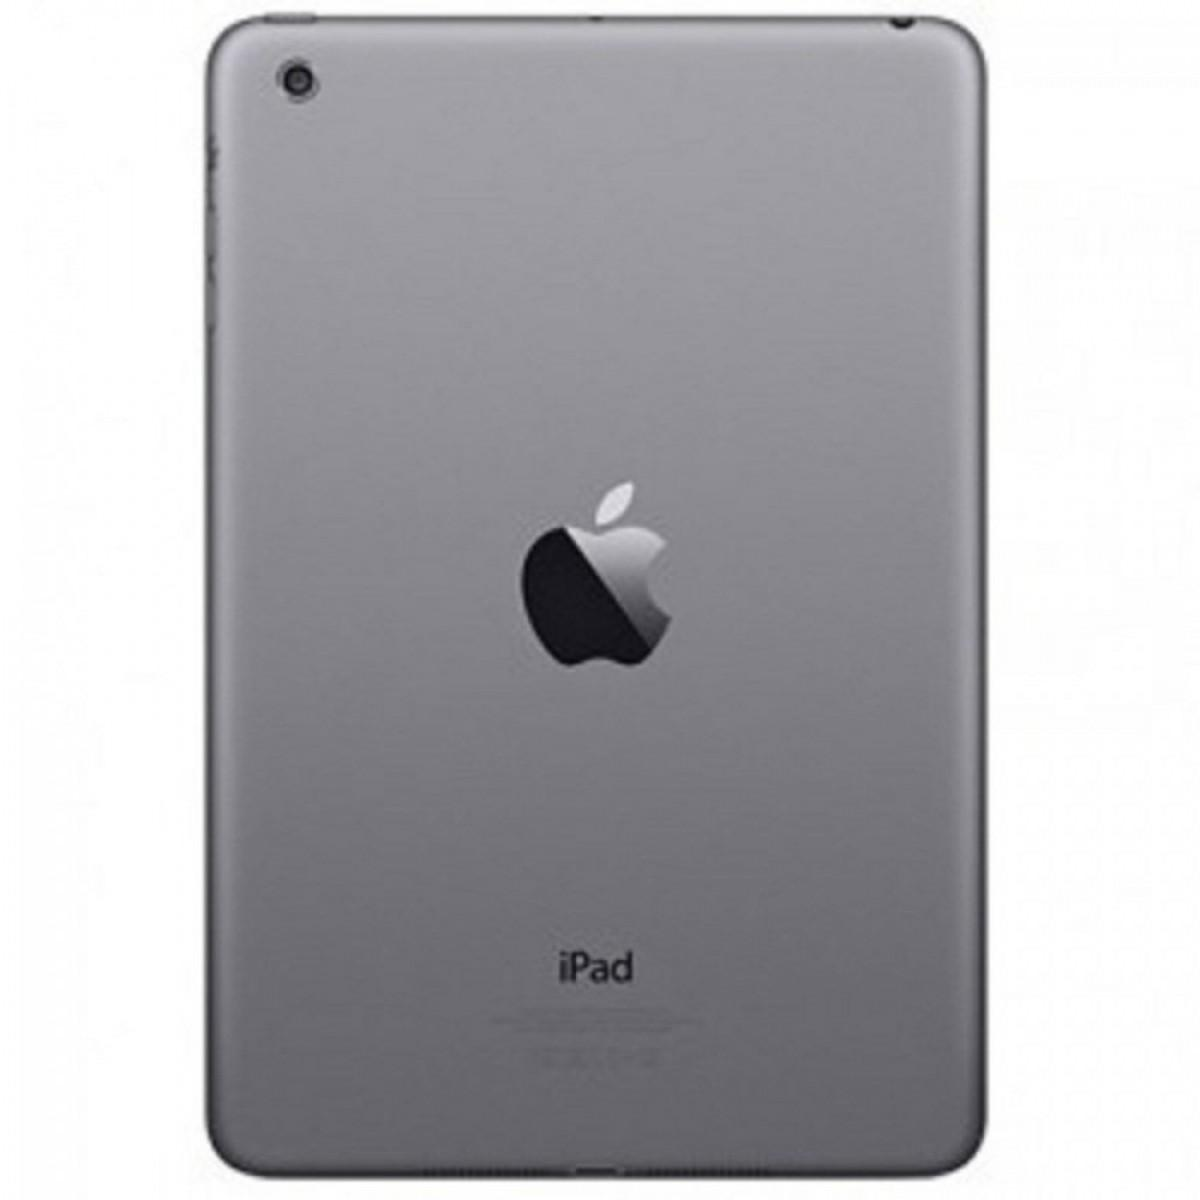 ipad mini 4 128gb wlan spacegrau gebraucht back. Black Bedroom Furniture Sets. Home Design Ideas